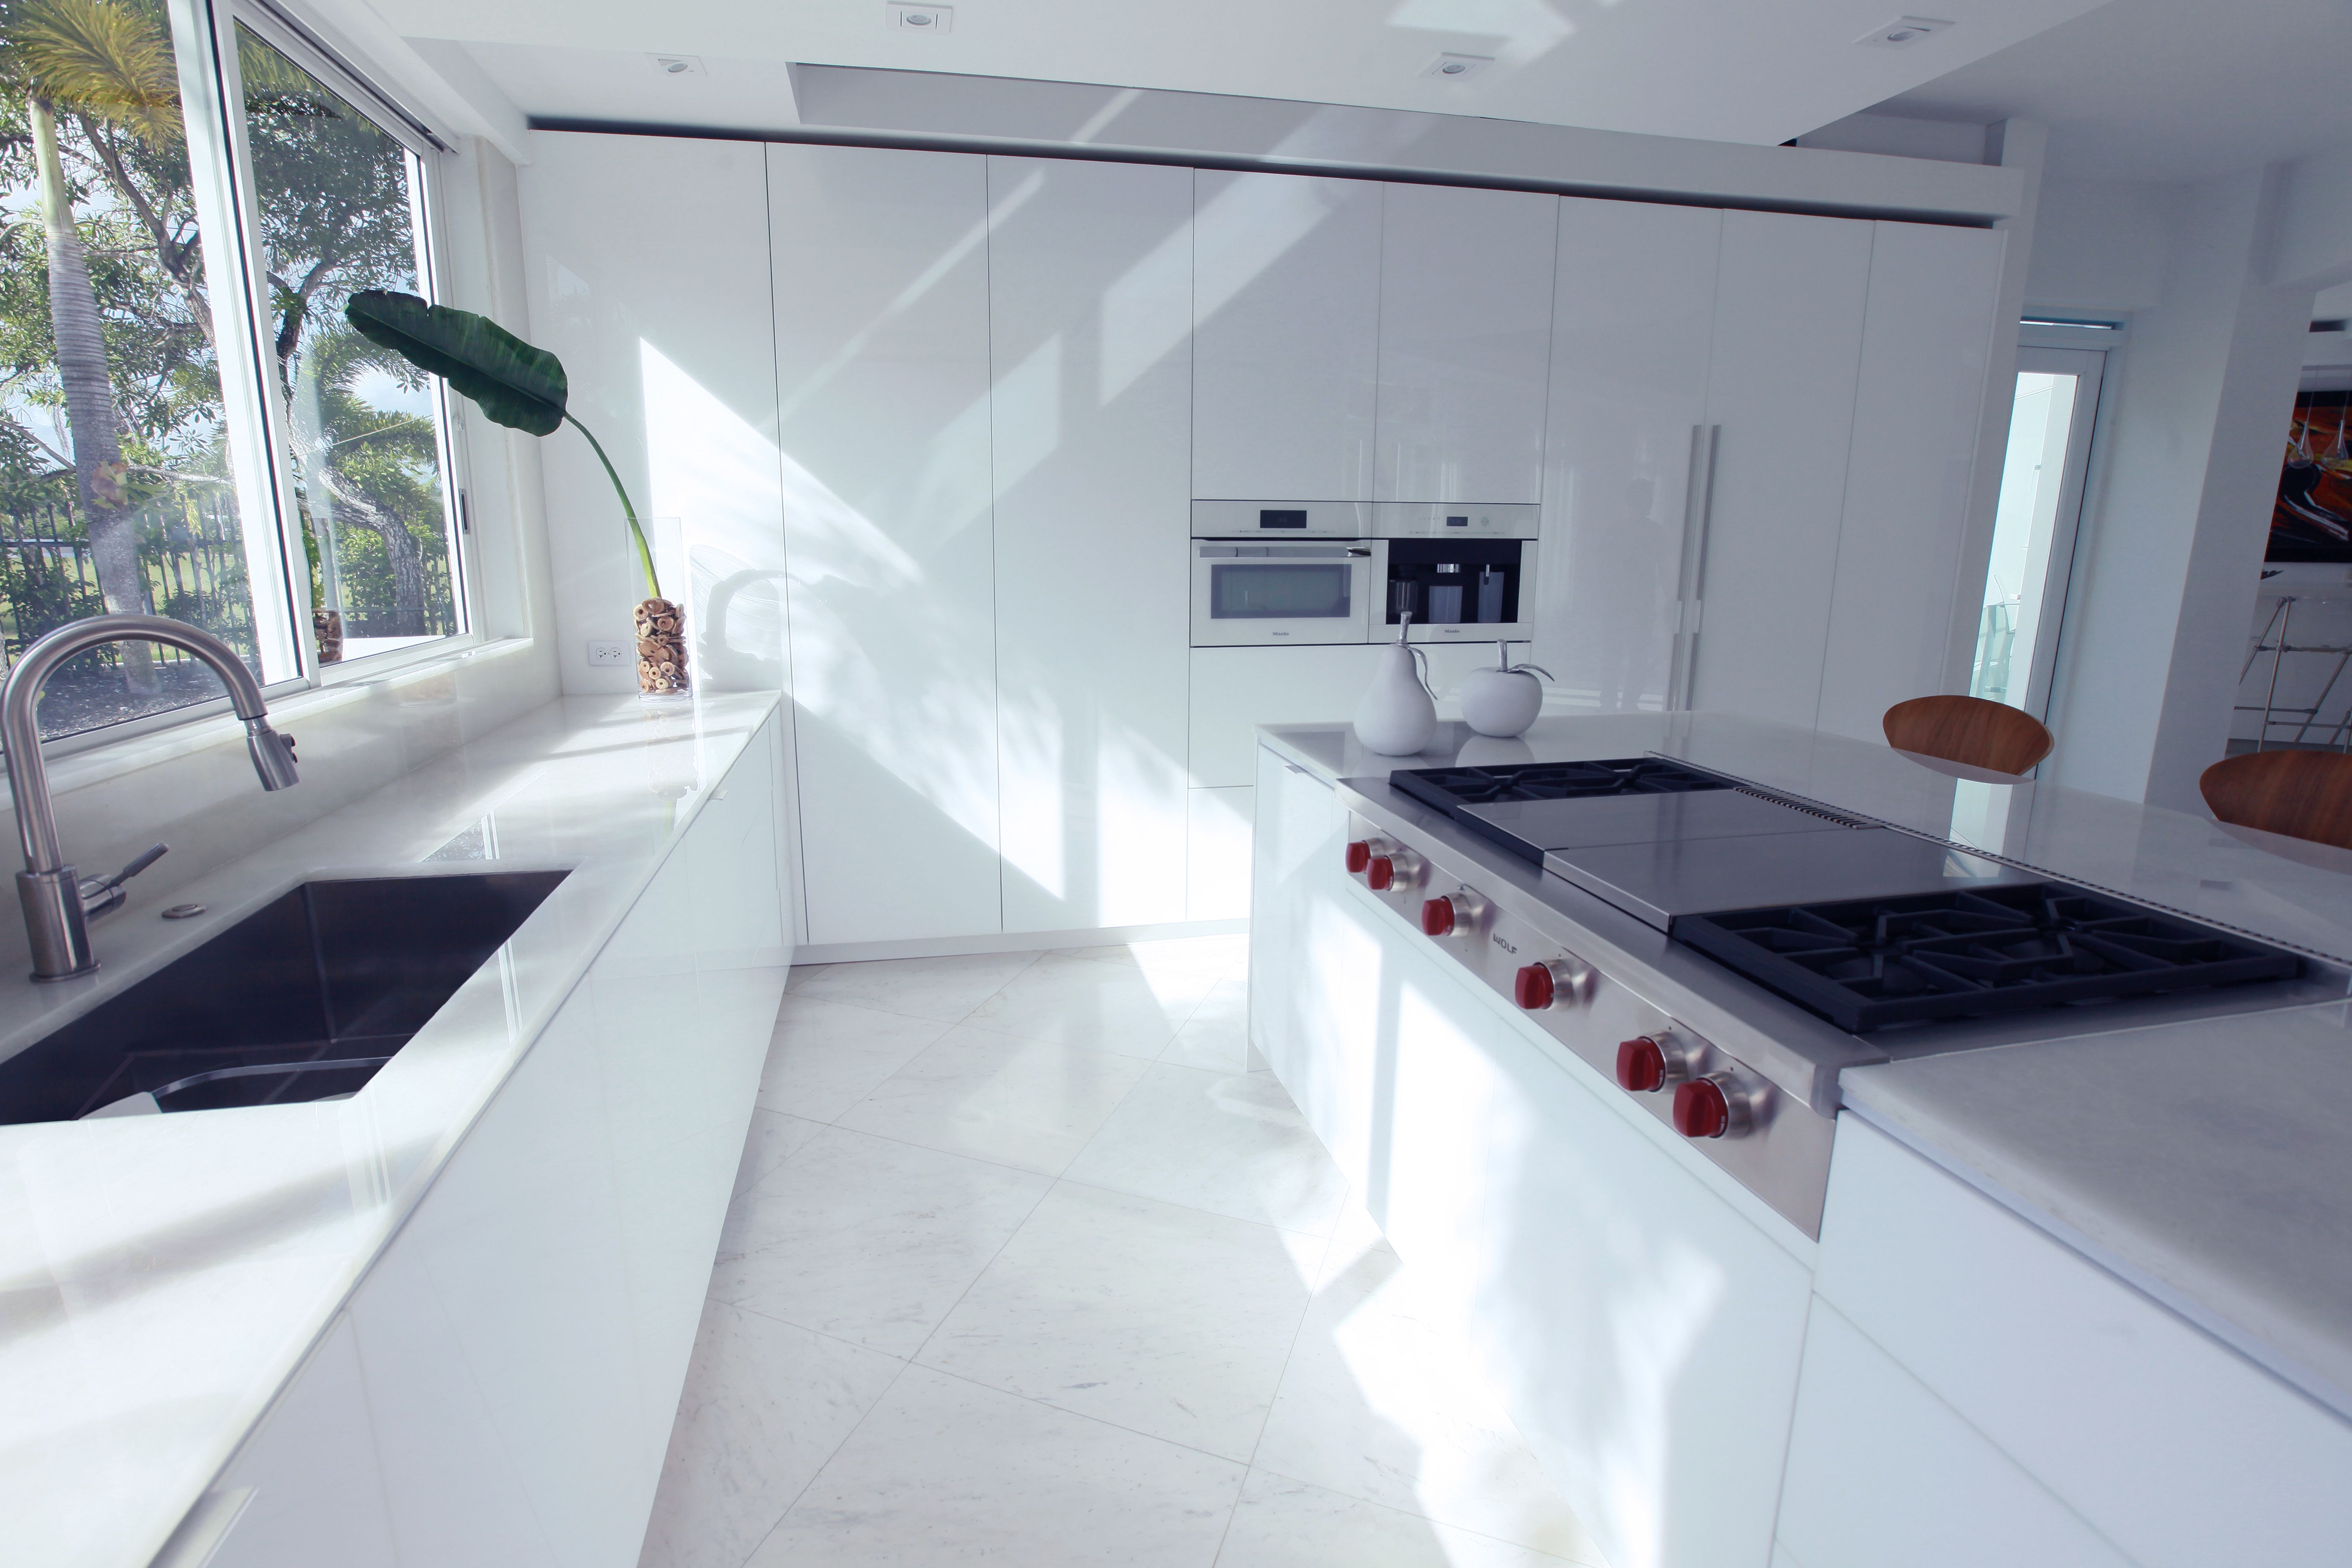 Brighten up your kitchen cabinets with RAUVISIO crystal. Polymer ...